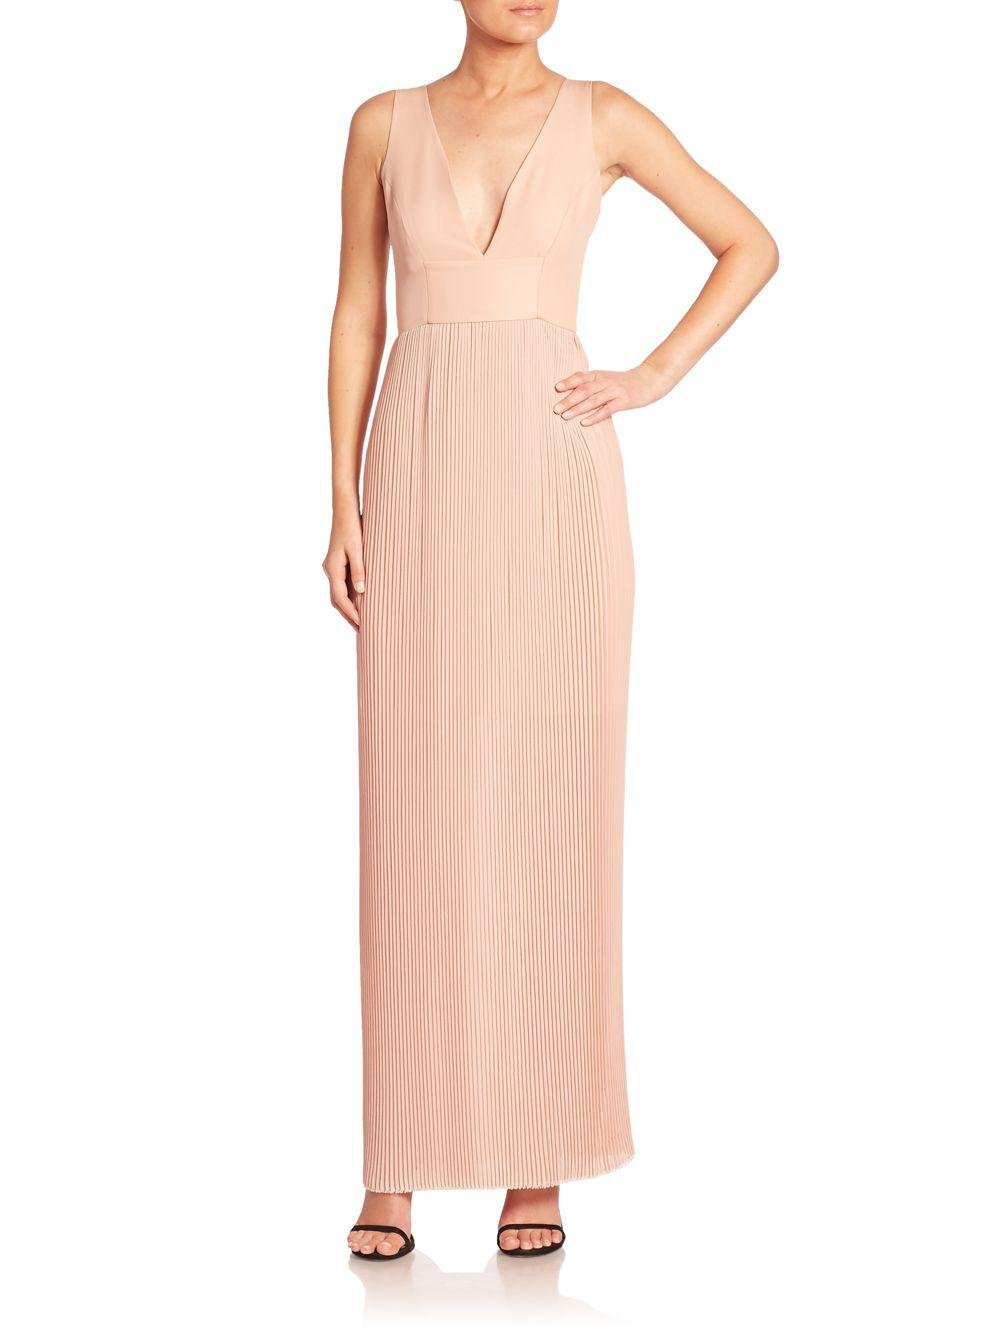 Lyst - Nicholas Accordion Pleated Gown in Pink - Save 44.1025641025641%